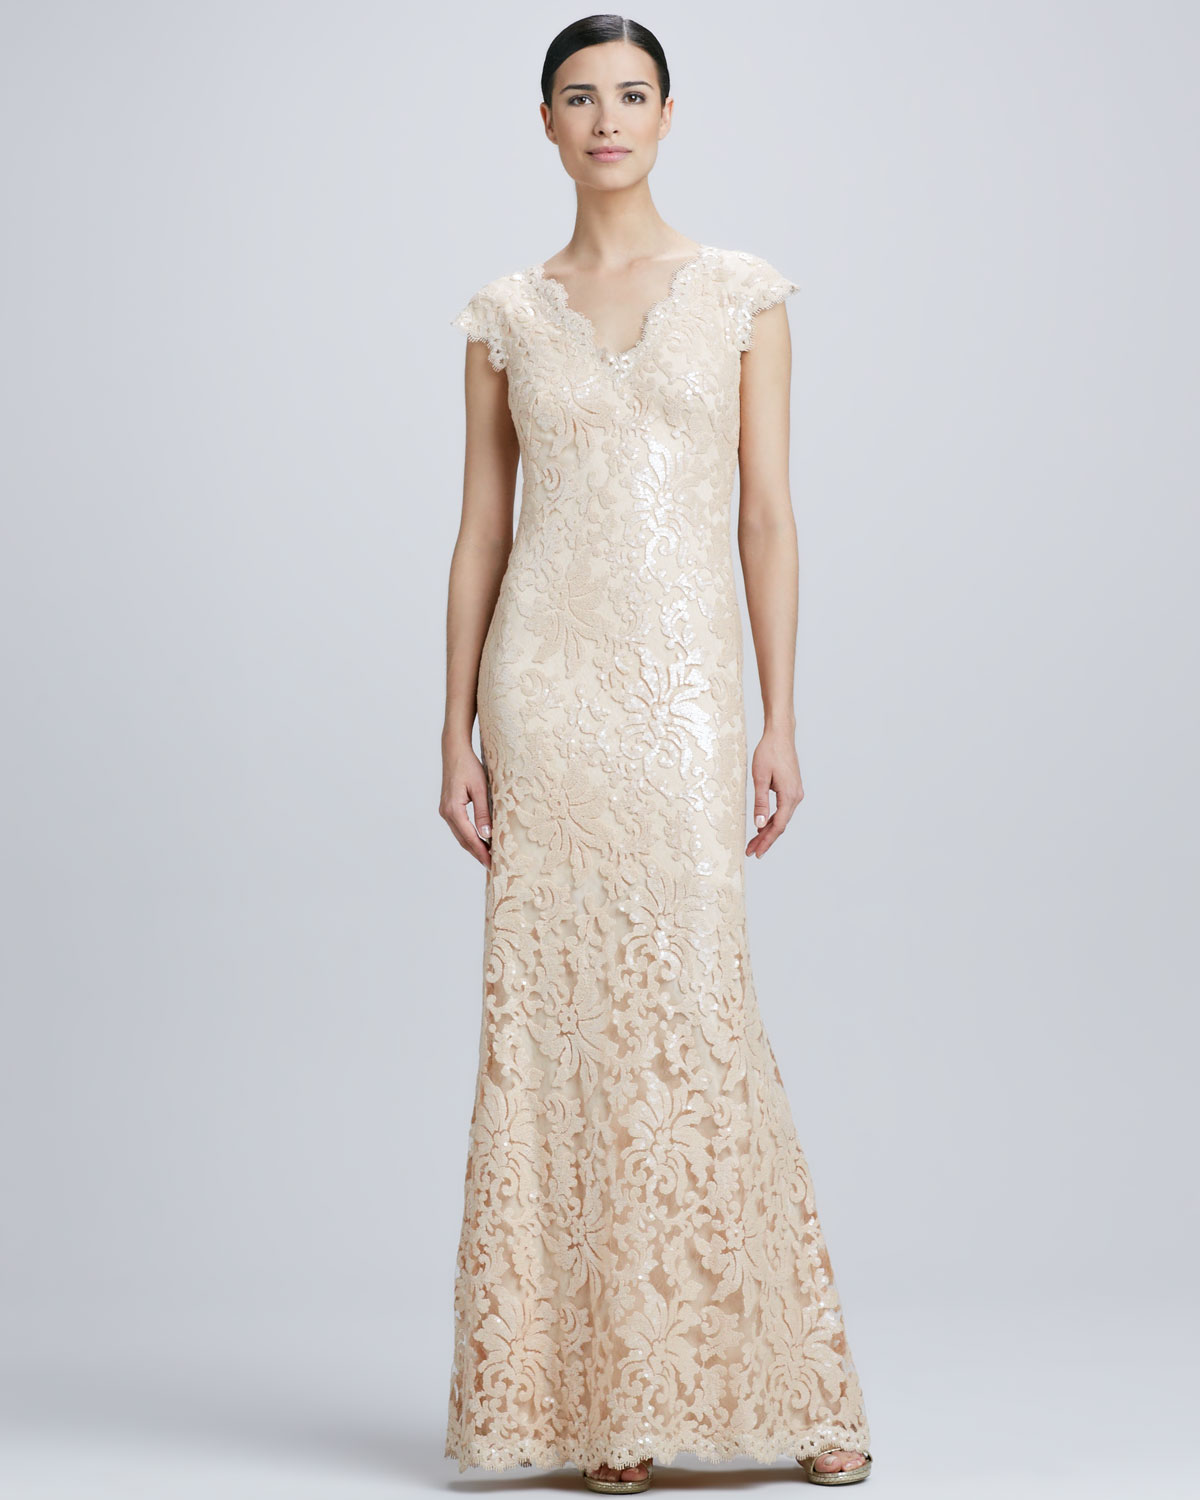 Lyst - Tadashi Shoji Sequined Lace V-neck Gown in Natural